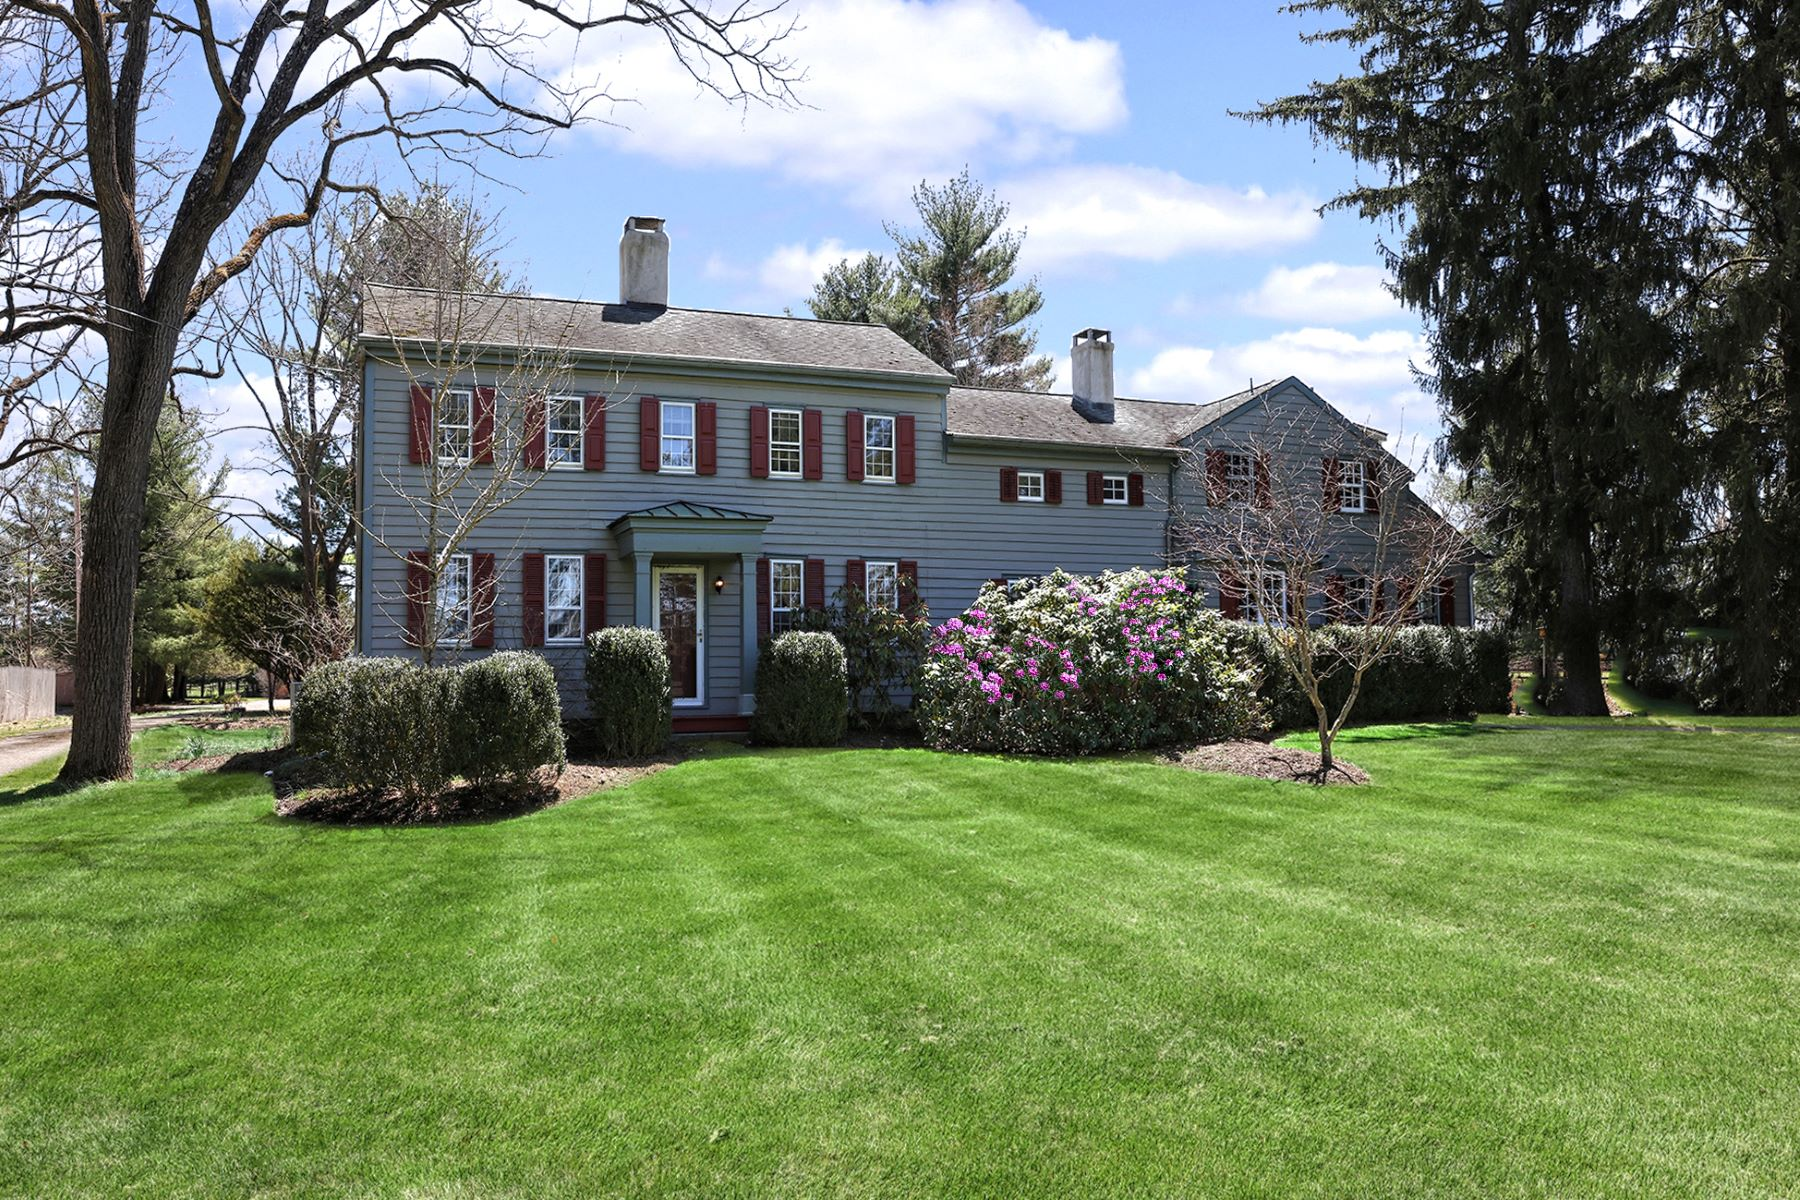 Single Family Homes for Sale at Turn of The Century Re-invented 260 Wertsville Road, Ringoes, New Jersey 08551 United States